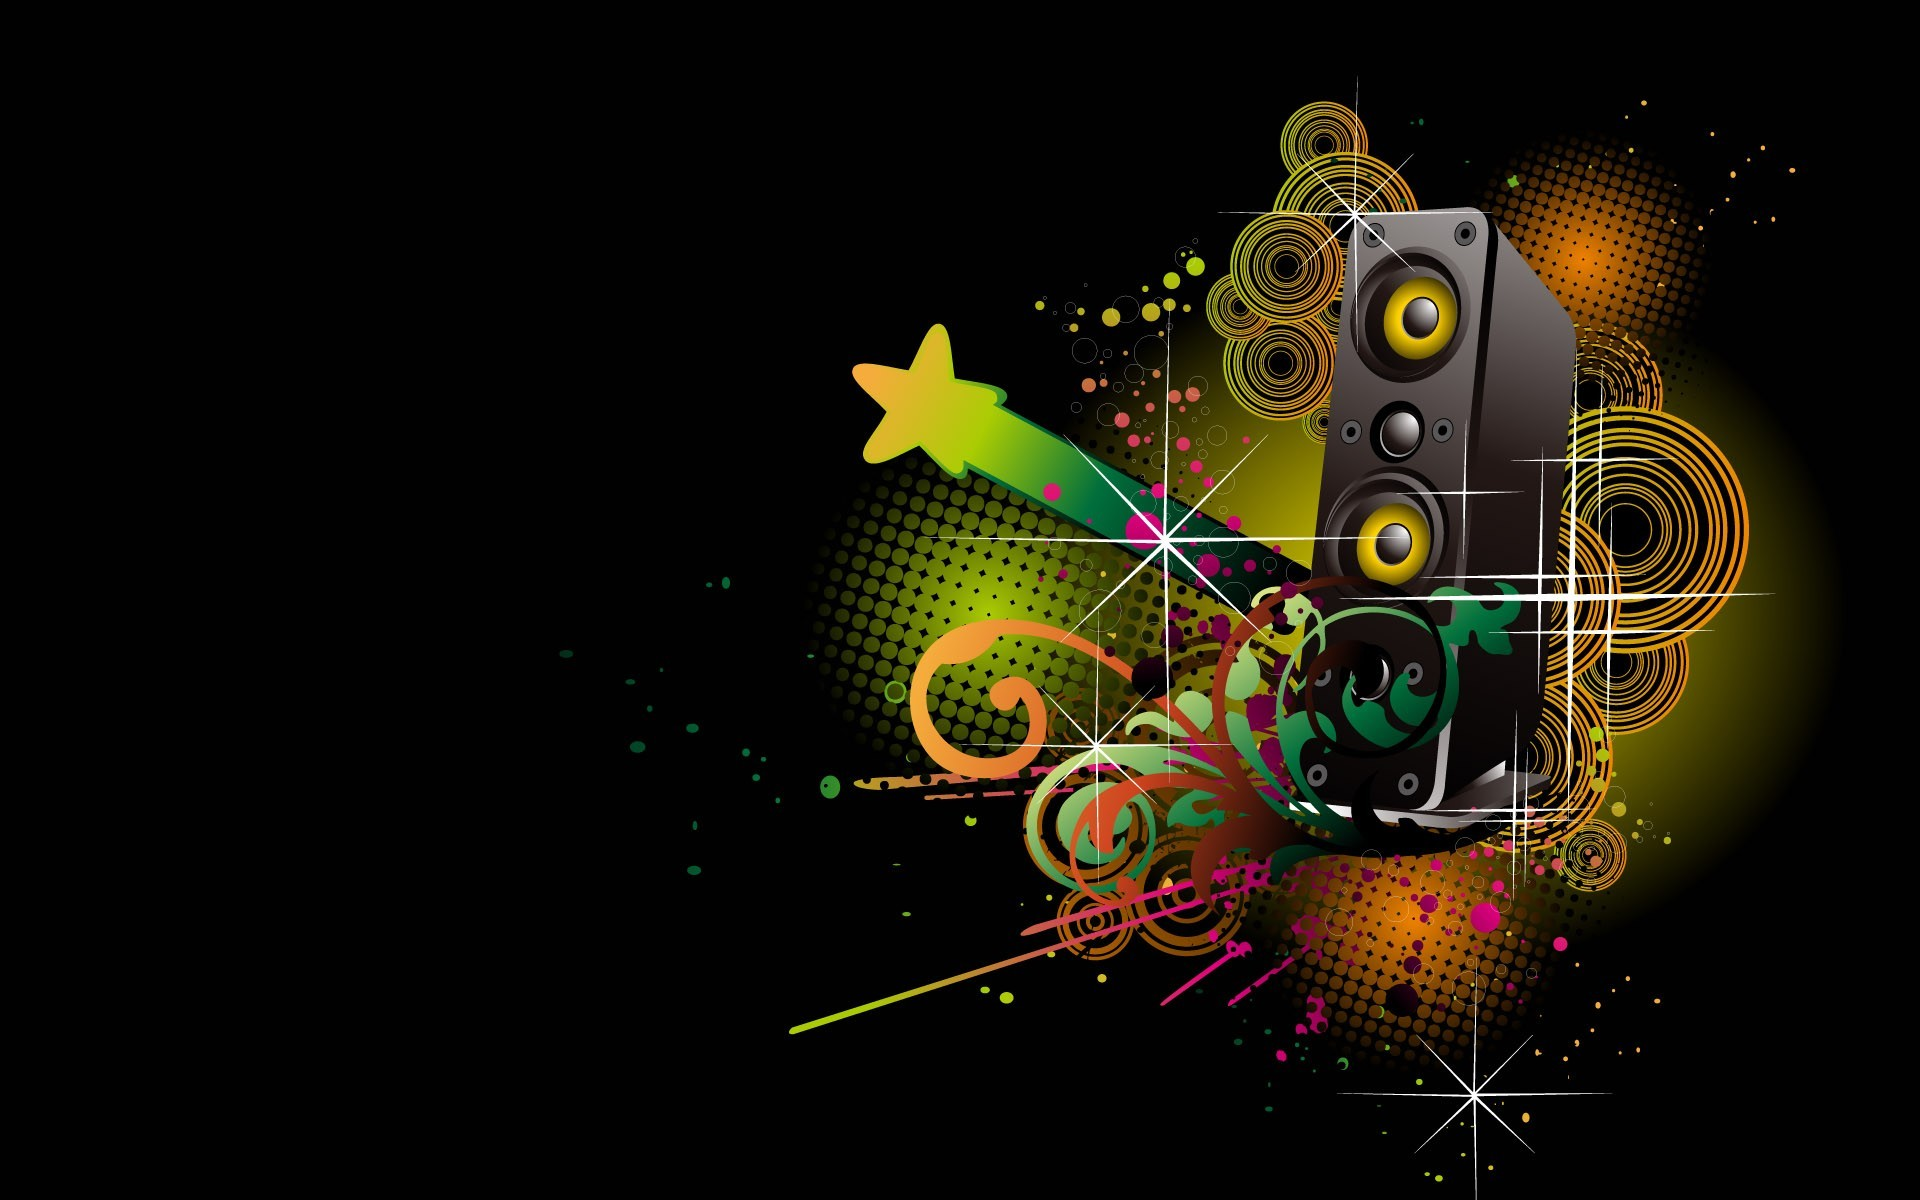 Abstract Music Wallpaper Abstract, Music, Colorful, Digital .